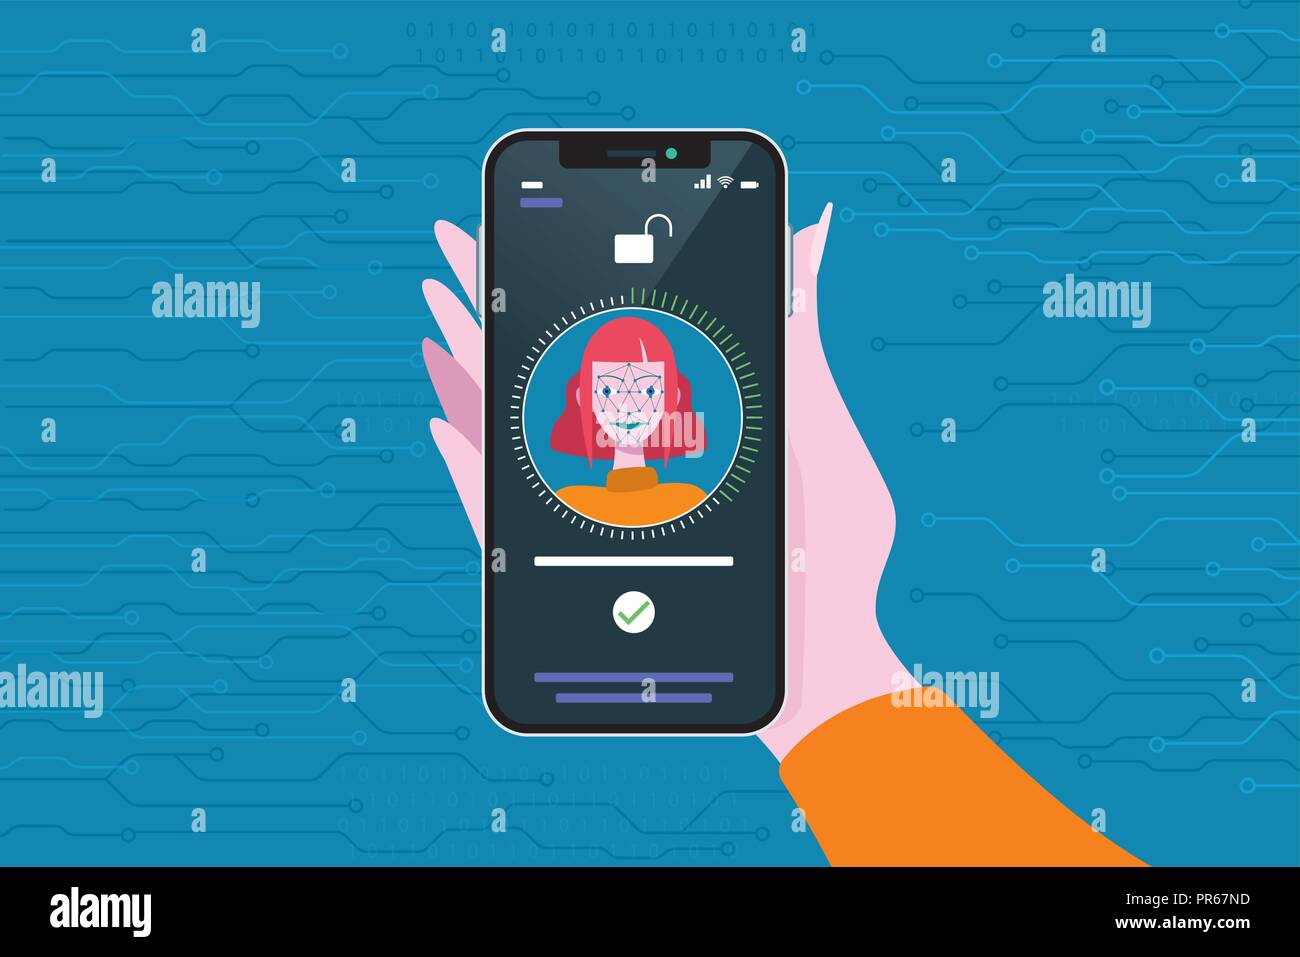 Face Recognition Technology used in a Smart Phone. Scanning og the face of a young woman for facial recognition. - Stock Vector